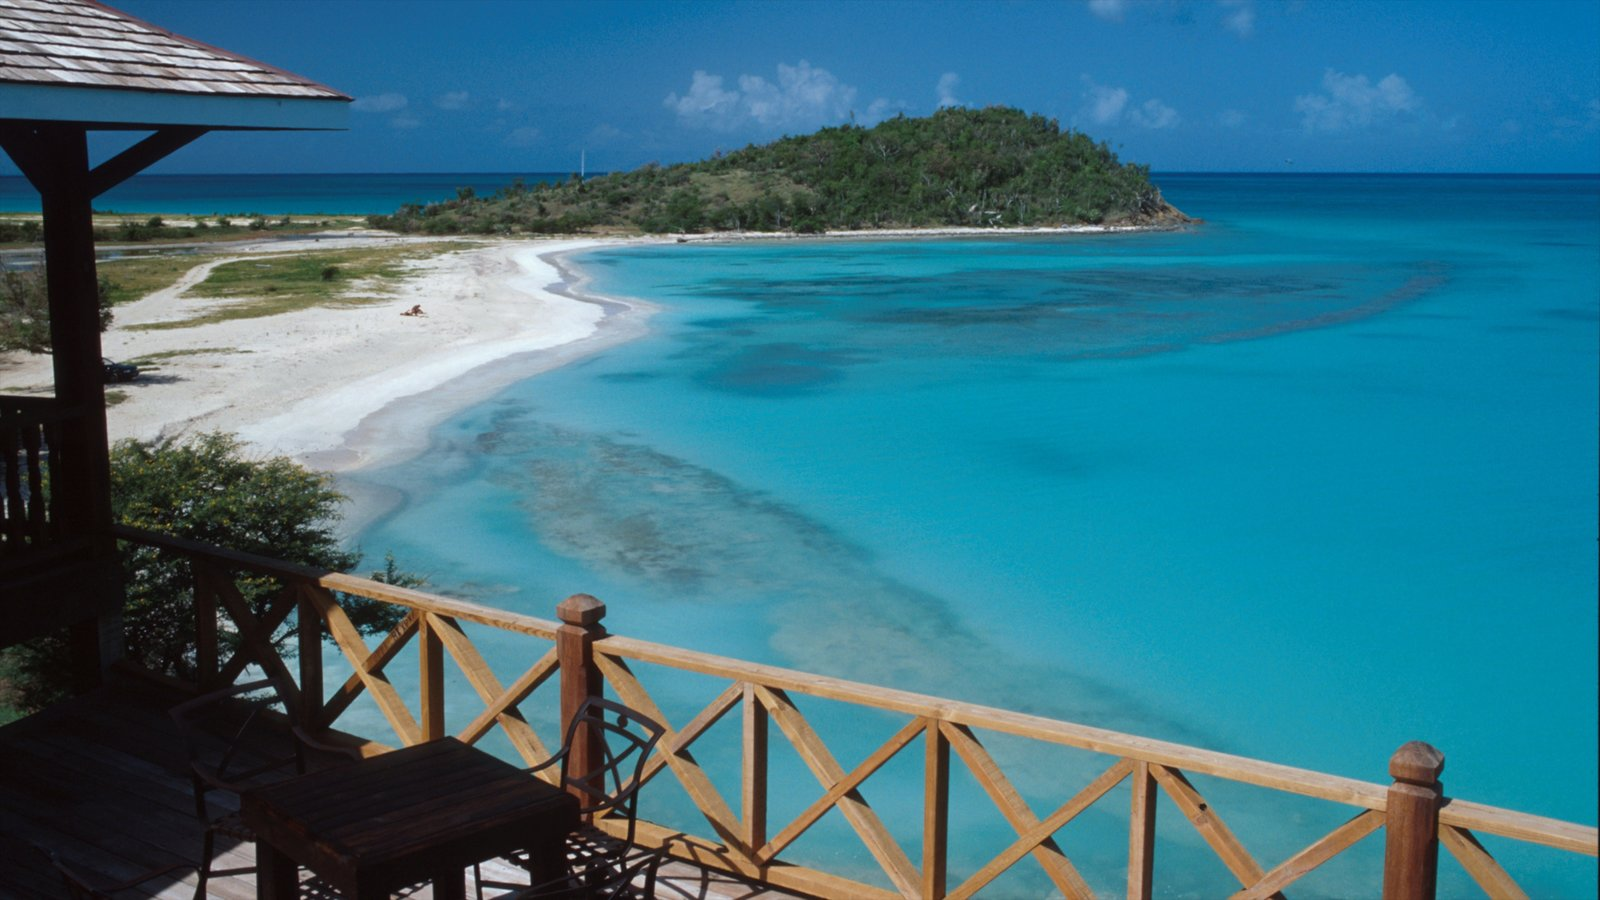 Antigua which includes tropical scenes, general coastal views and island views